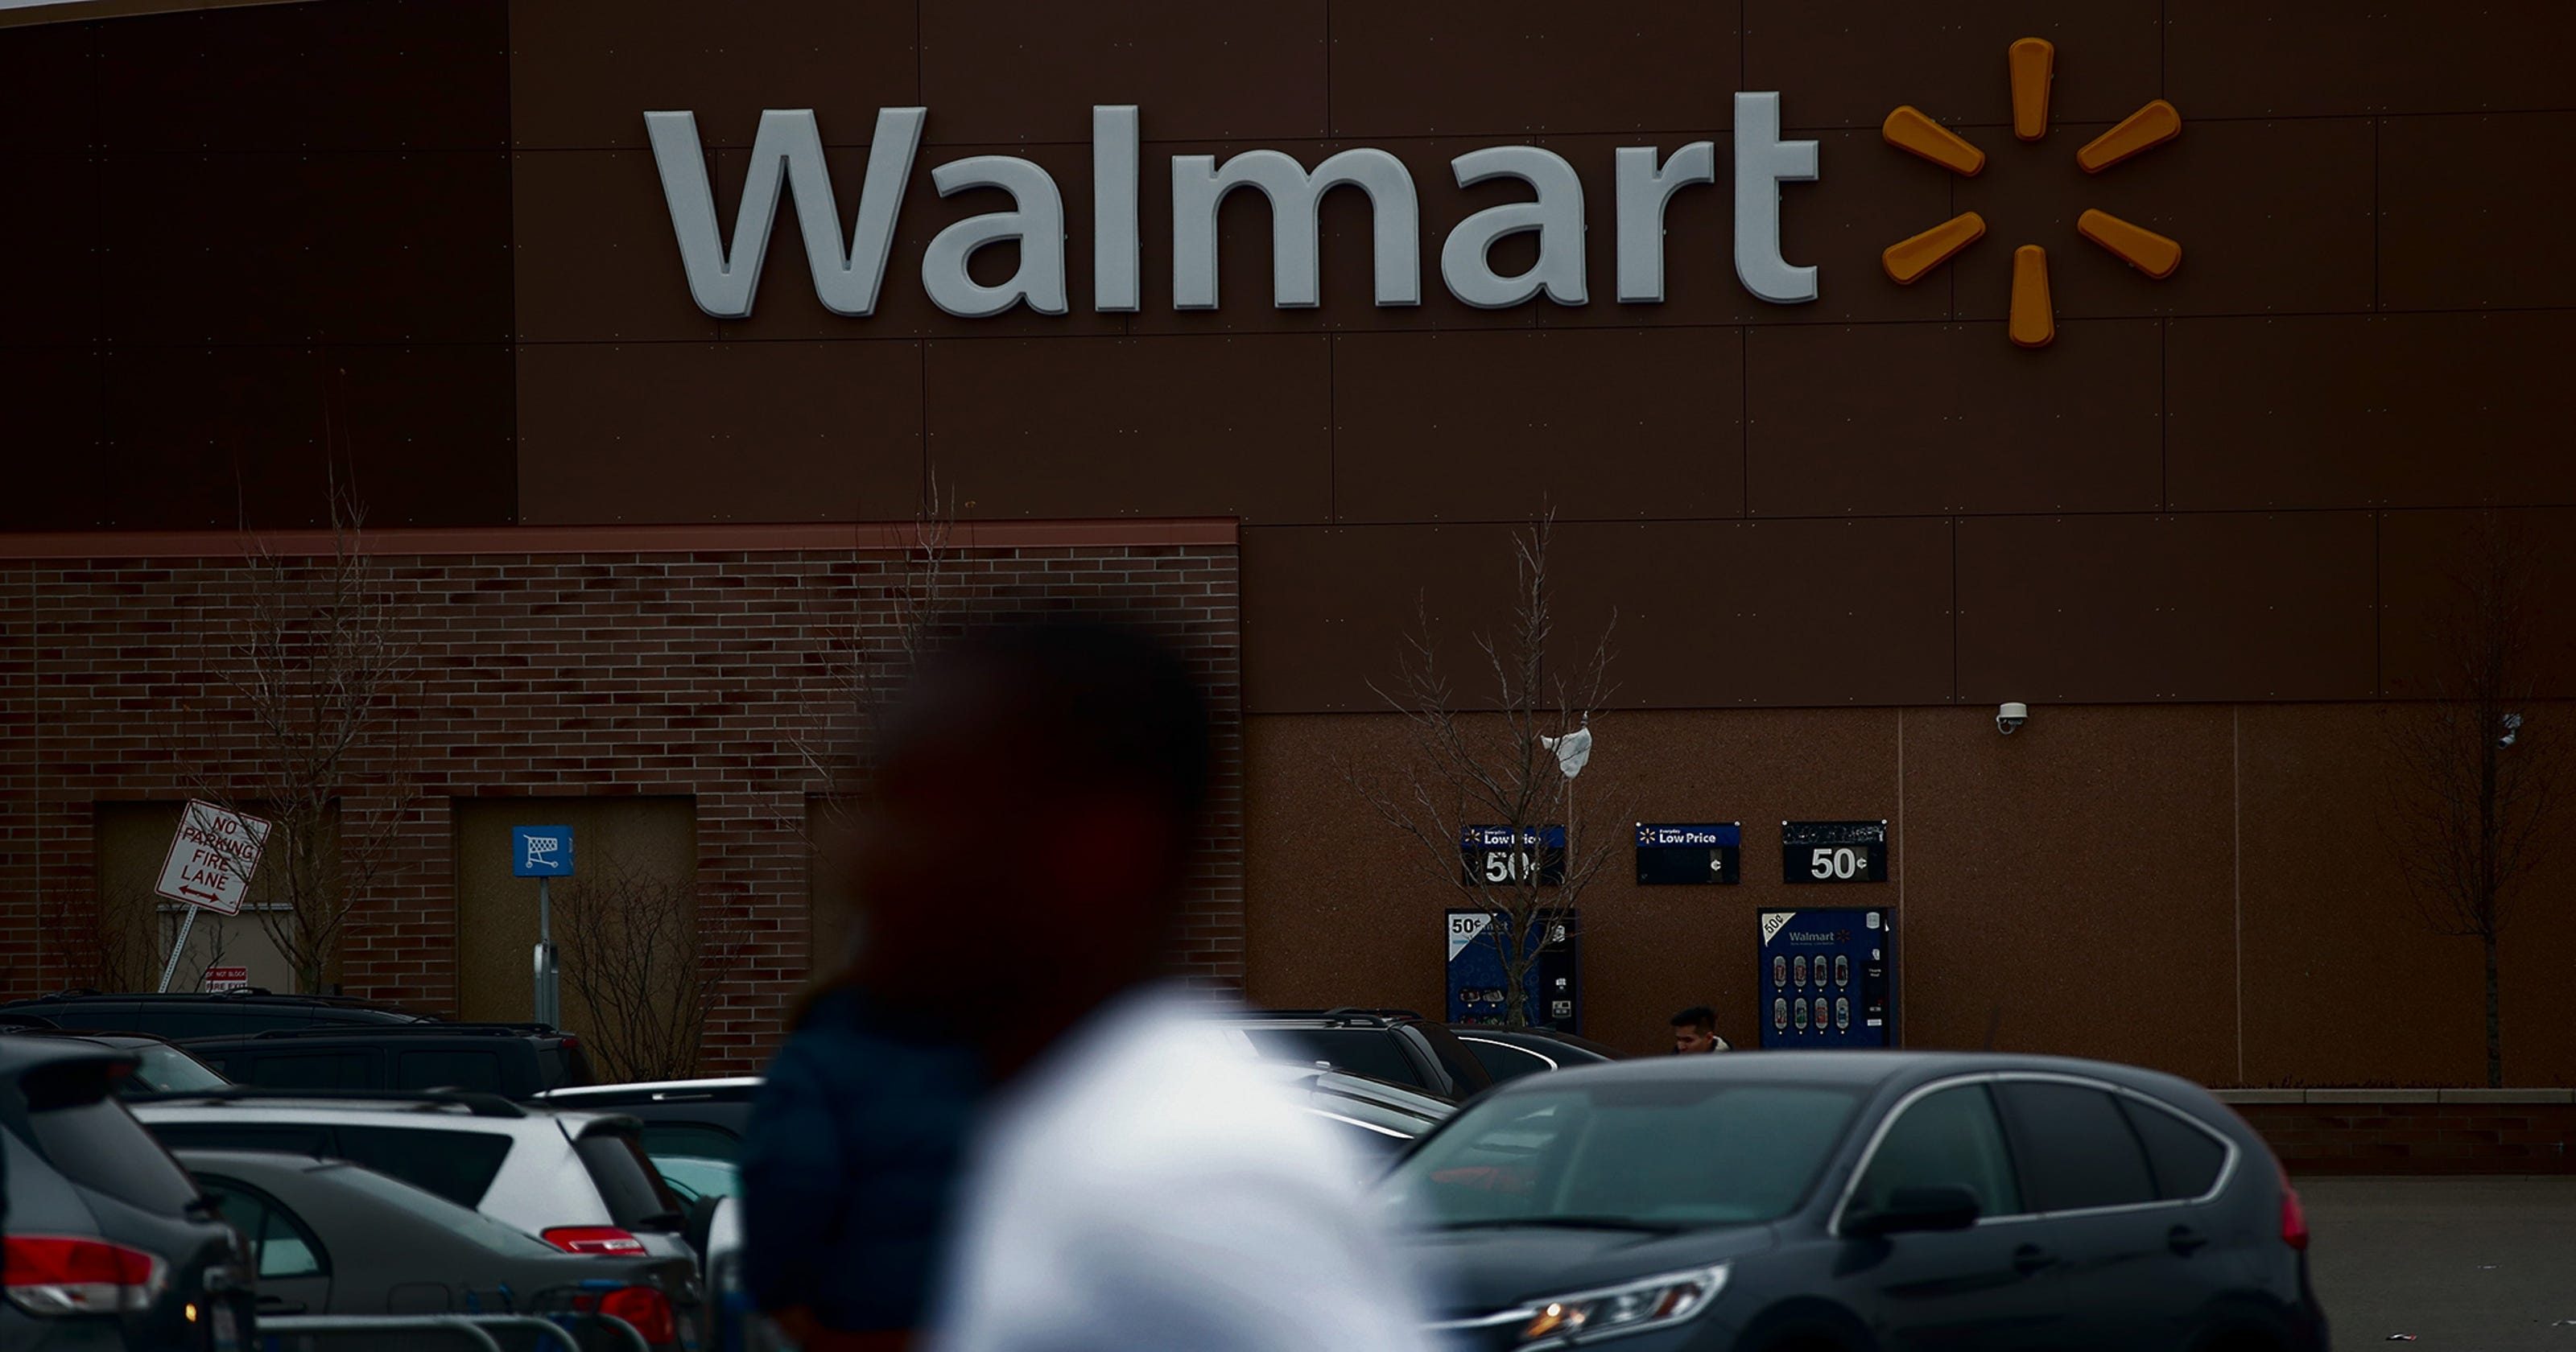 Walmart sued for firing of employee with Down syndrome